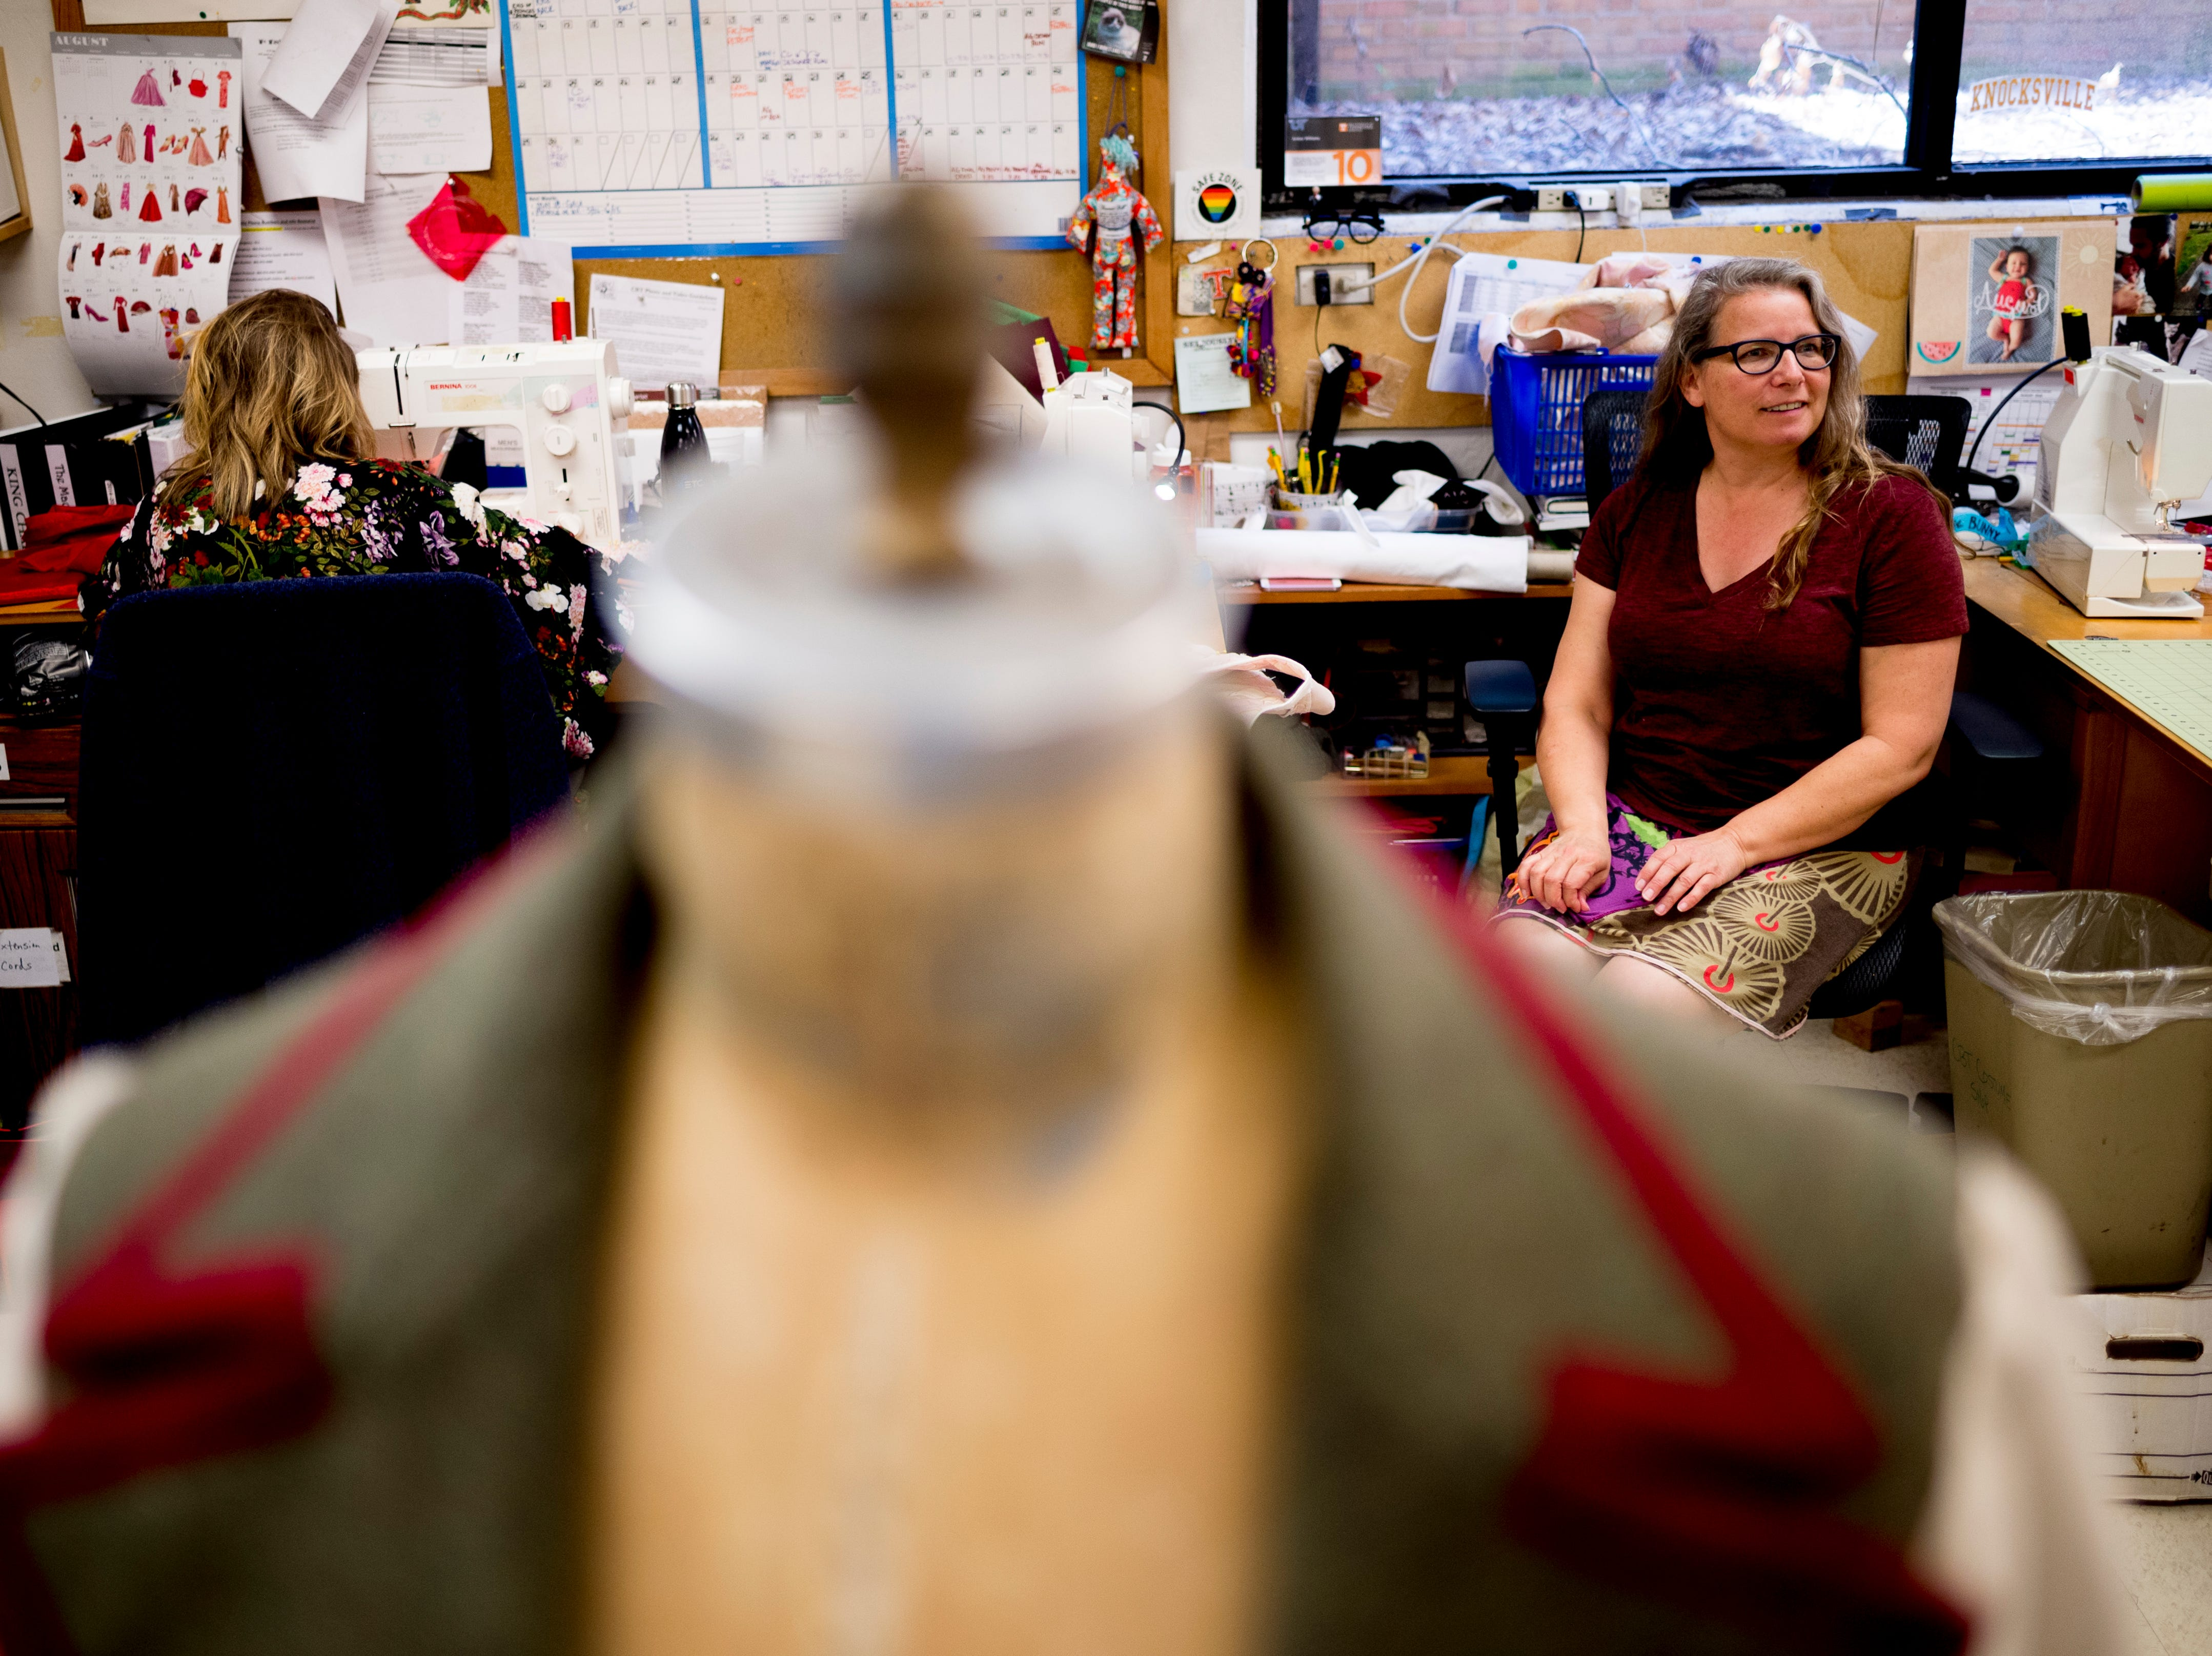 Costume designers work in the costume shop ahead of opening day for Candide at the Clarence Brown Theatre  in Knoxville, Tennessee on Tuesday, August 14, 2018. Leonard BernsteinÕs acclaimed operetta, Candide, is to open Friday, August 31, with previews beginning August 29.